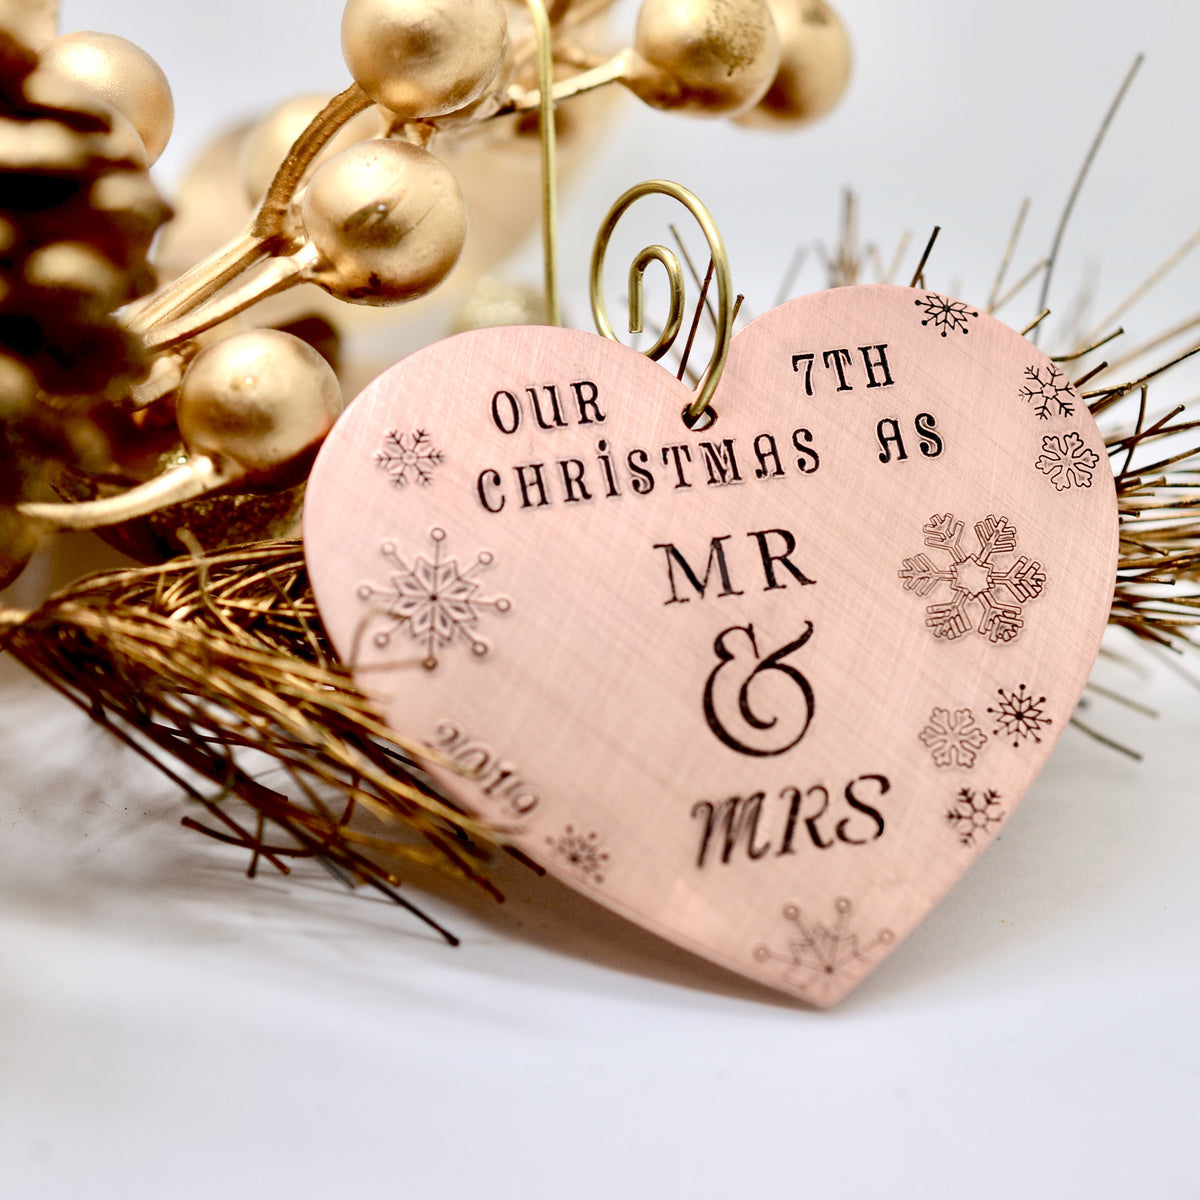 7th Wedding Anniversary Christmas Ornament - Love It Personalized